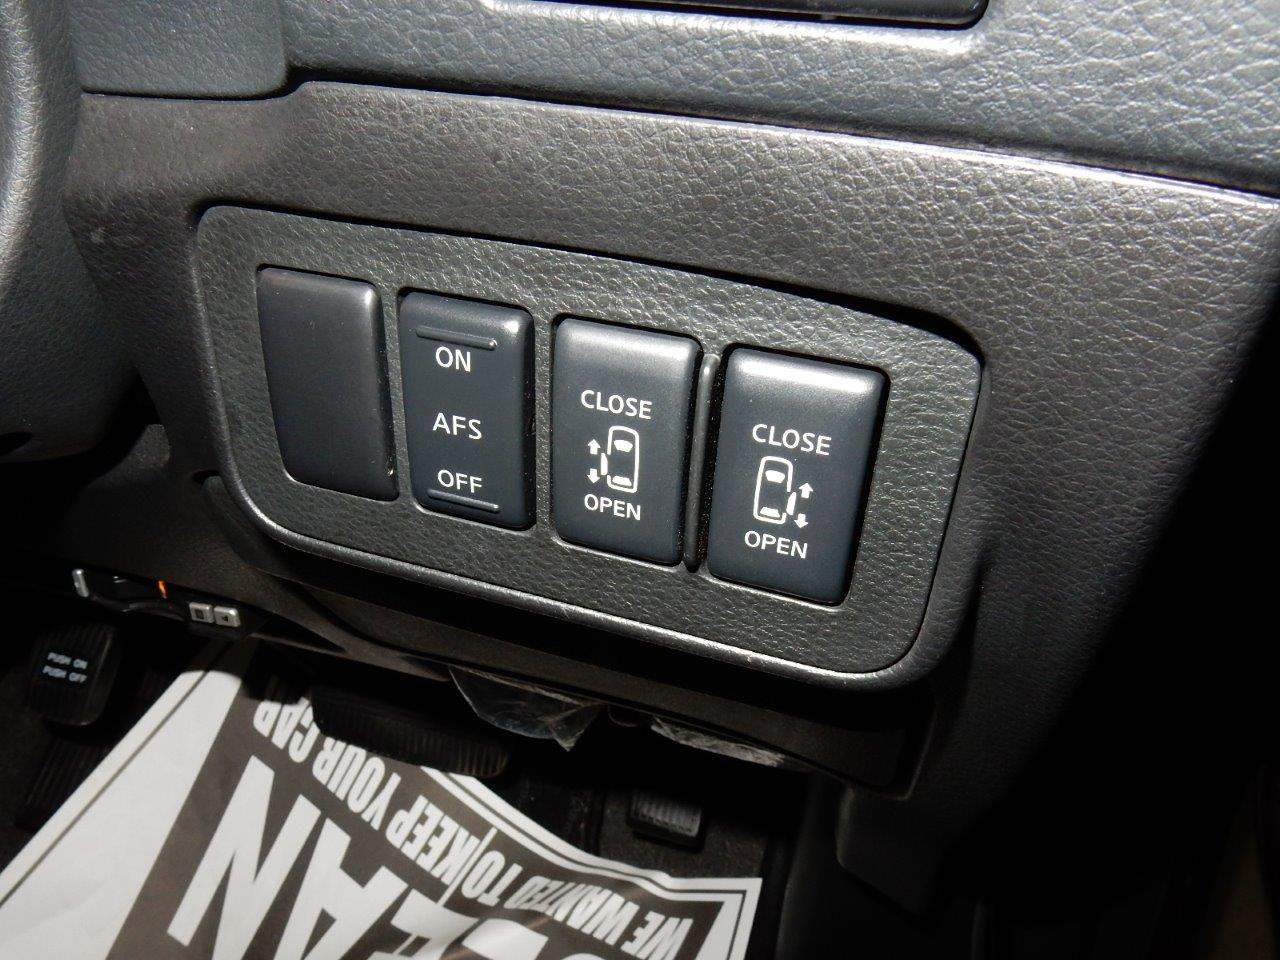 2009 Nissan Elgrand NE51 powerslide door controls